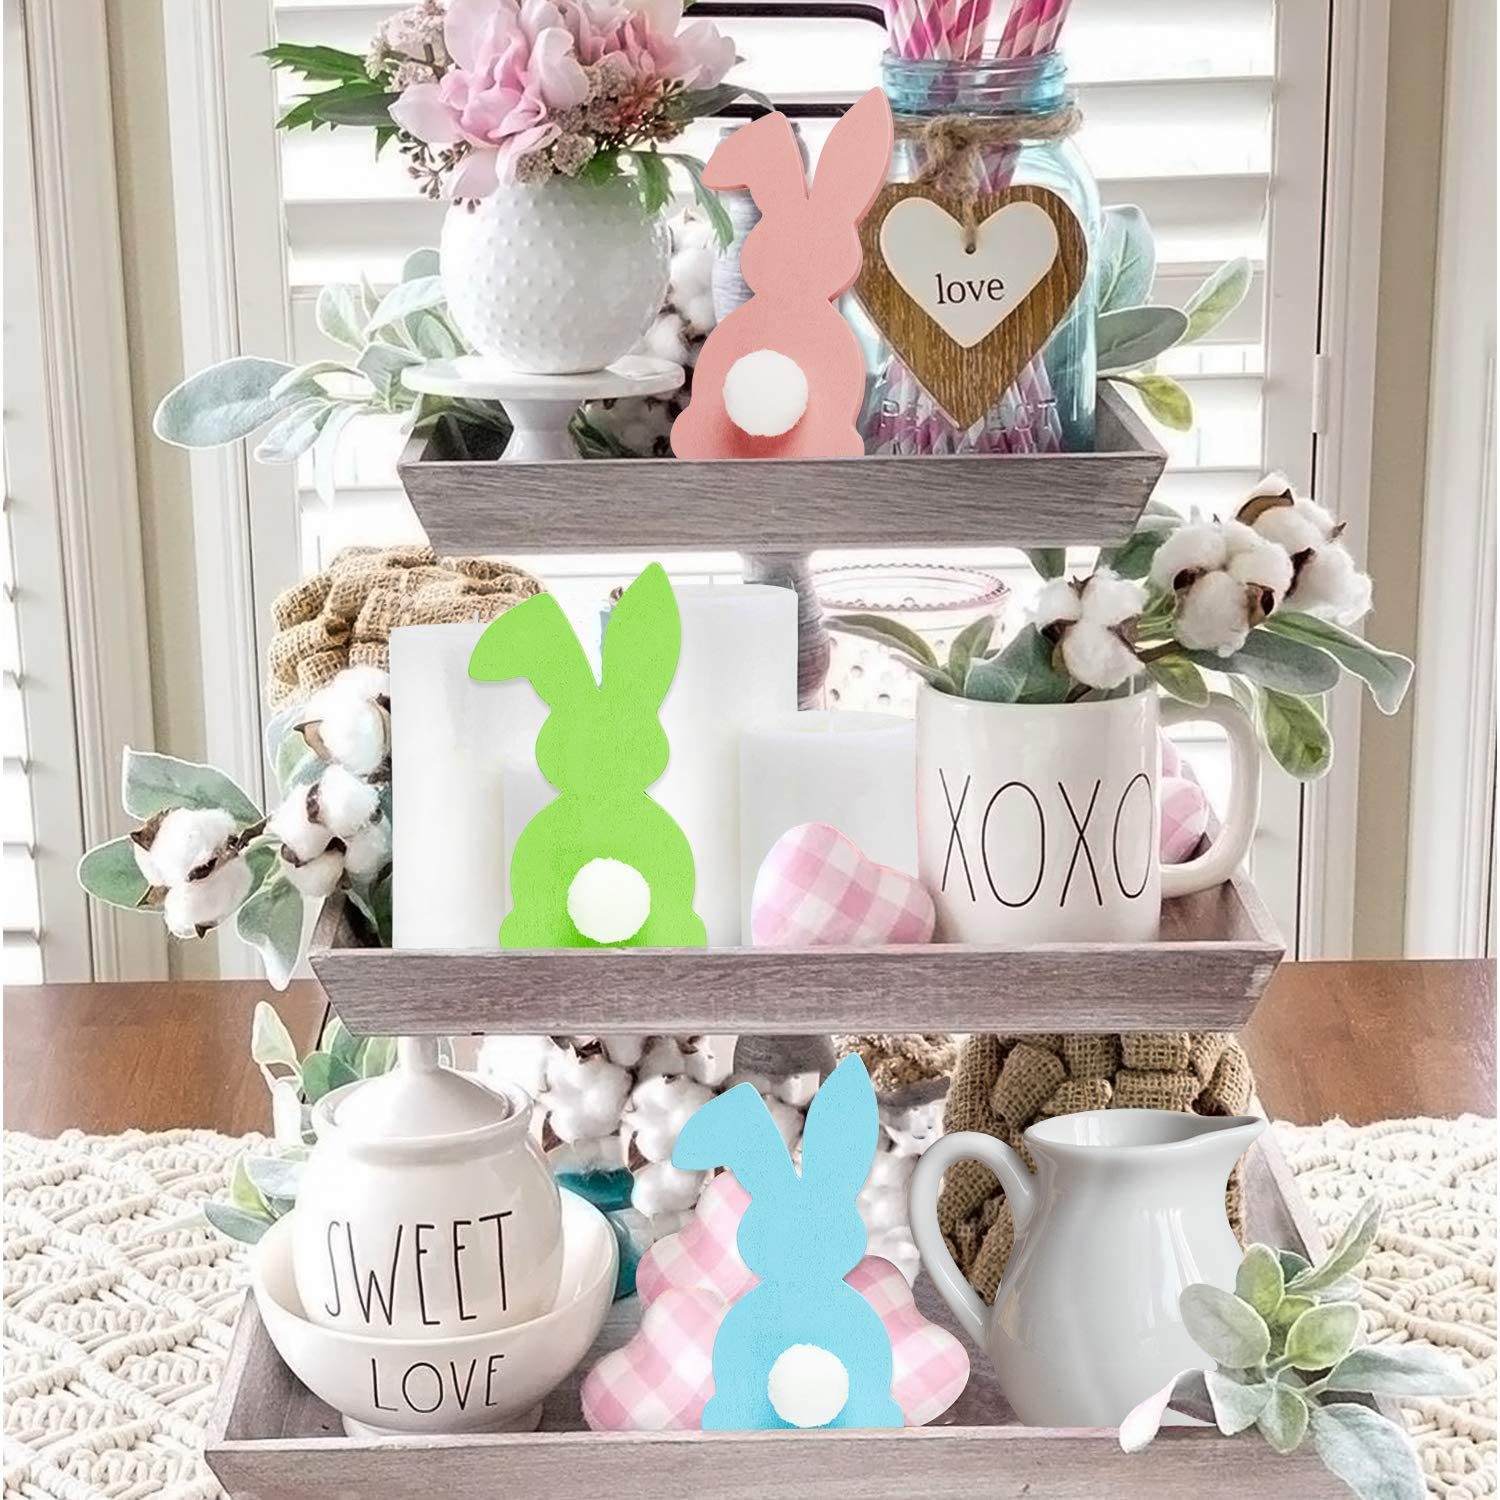 Easter Mini Wooden Bunny Treats Rolling Pin Farmhouse Style Home Decor Tiered Tray Decor